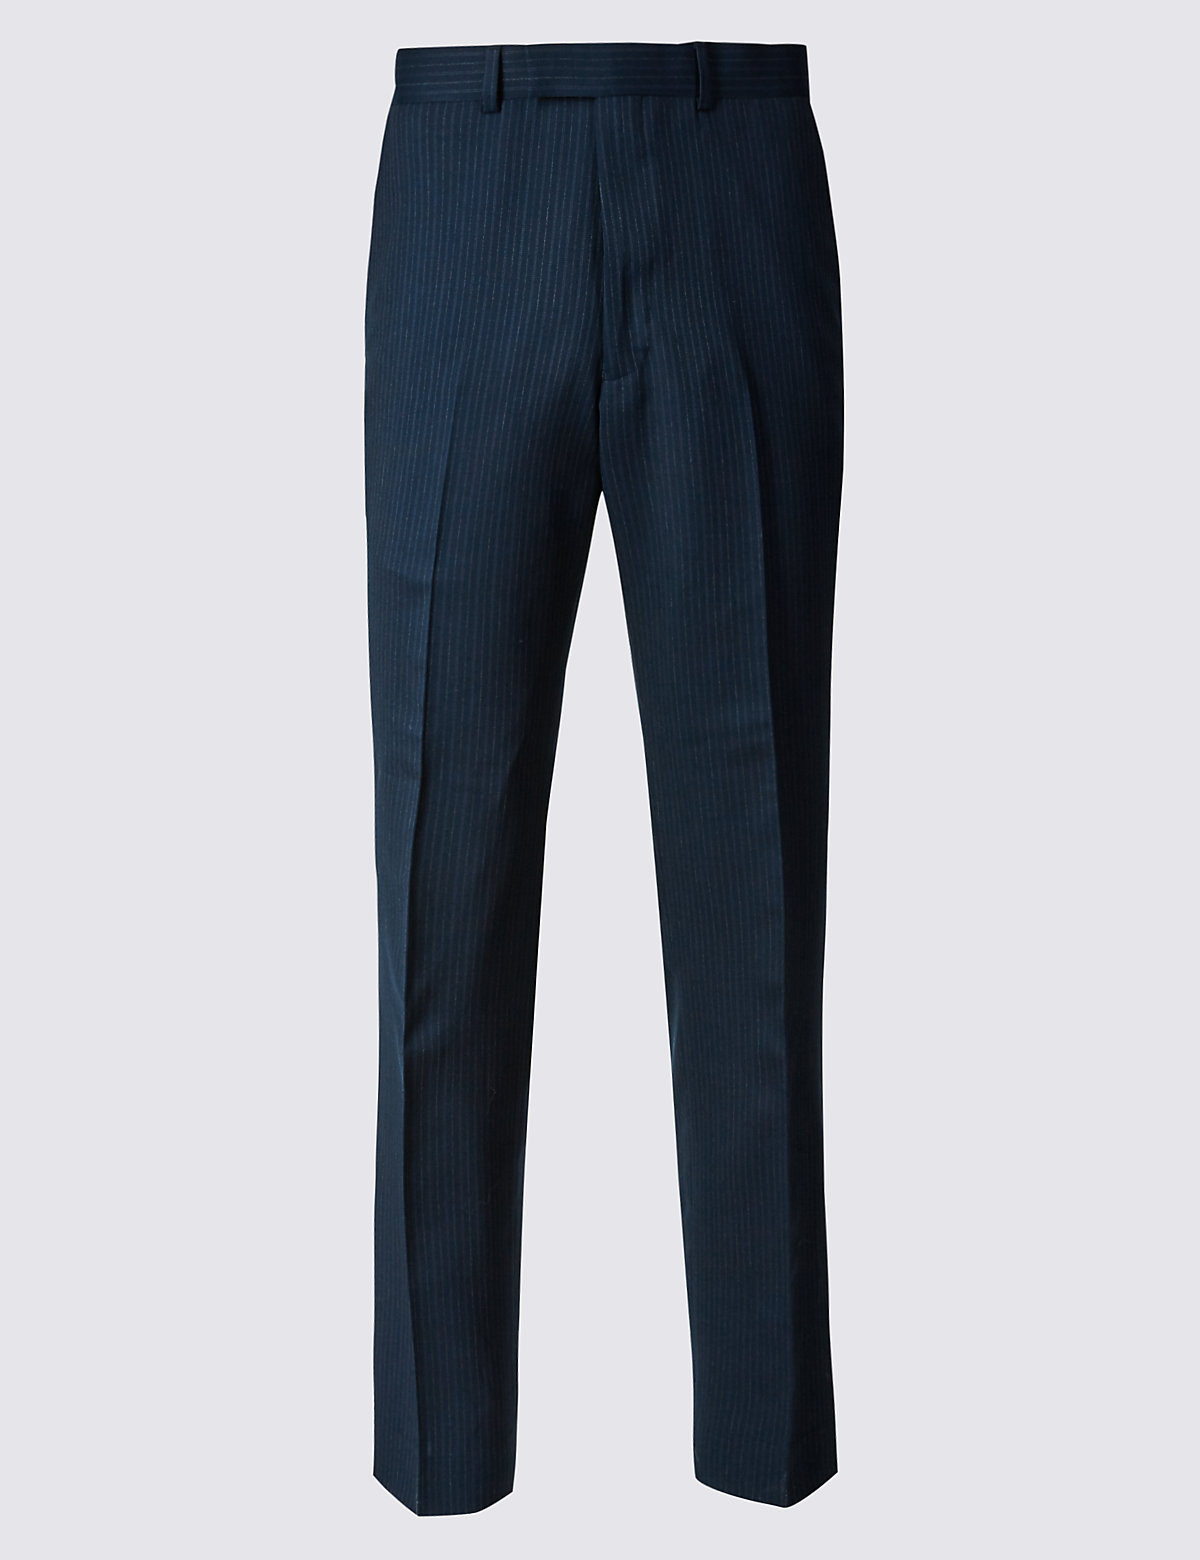 Marks & Spencer Navy Striped Slim Fit Wool Trousers